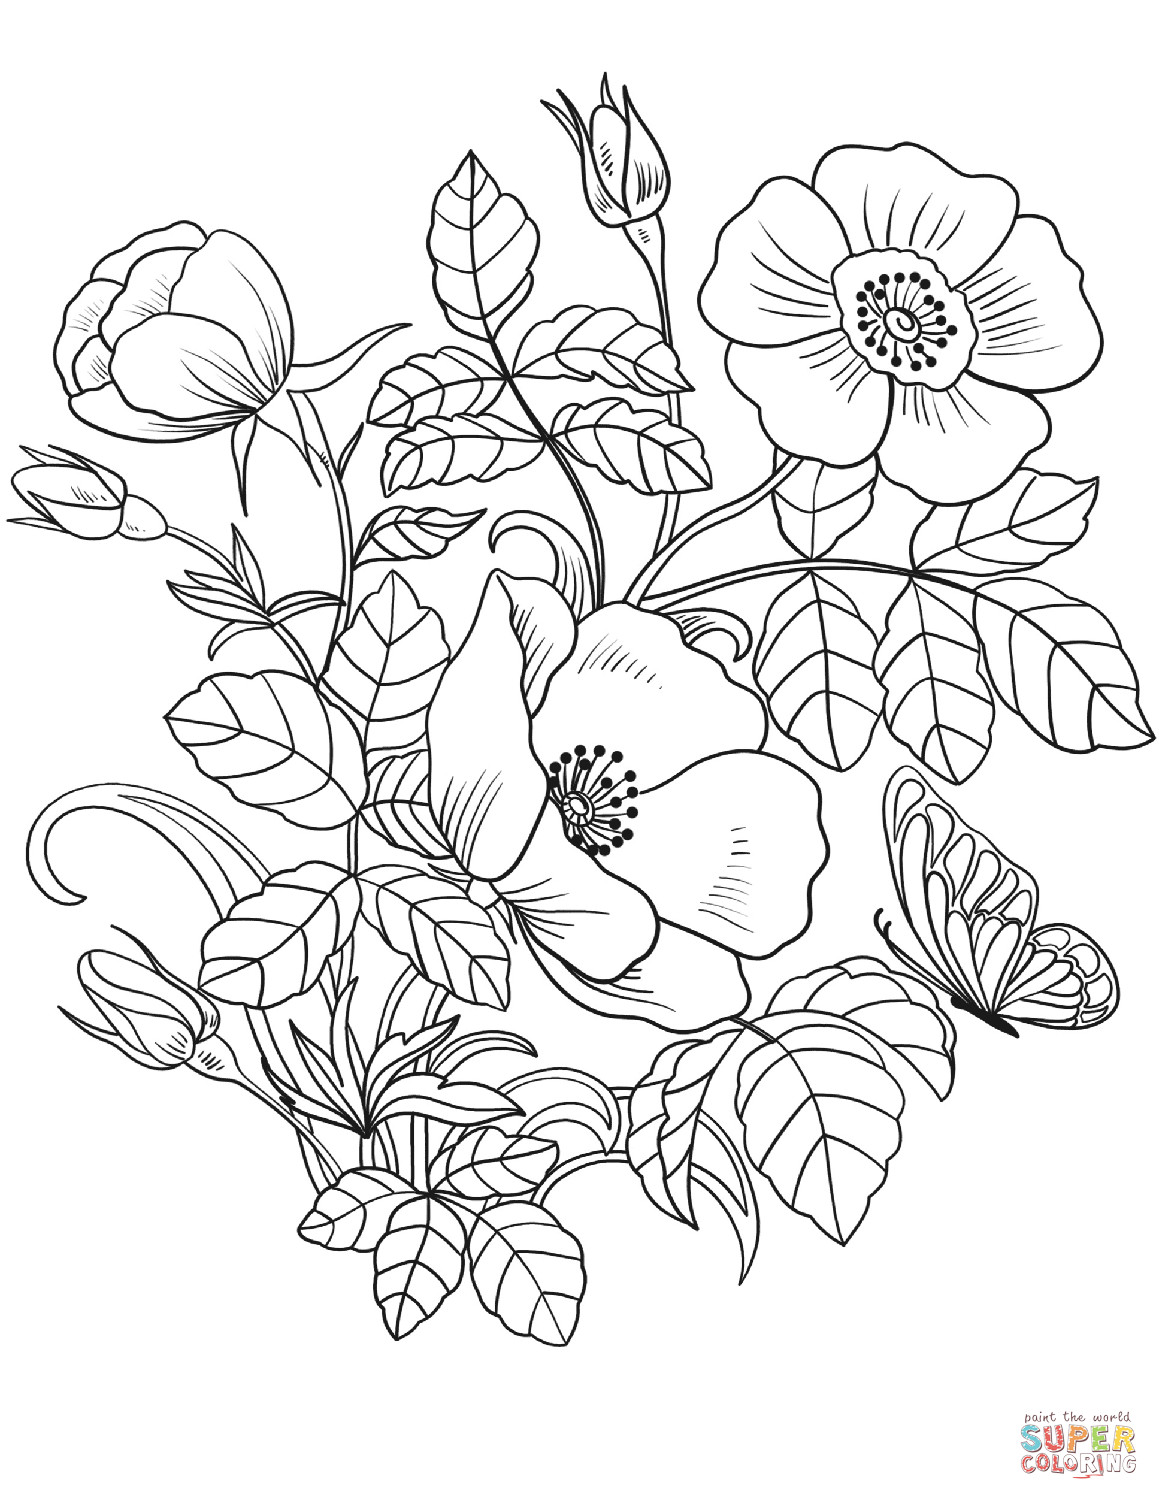 Best ideas about Printable Coloring Pages Flowers . Save or Pin Spring Flowers coloring page Now.